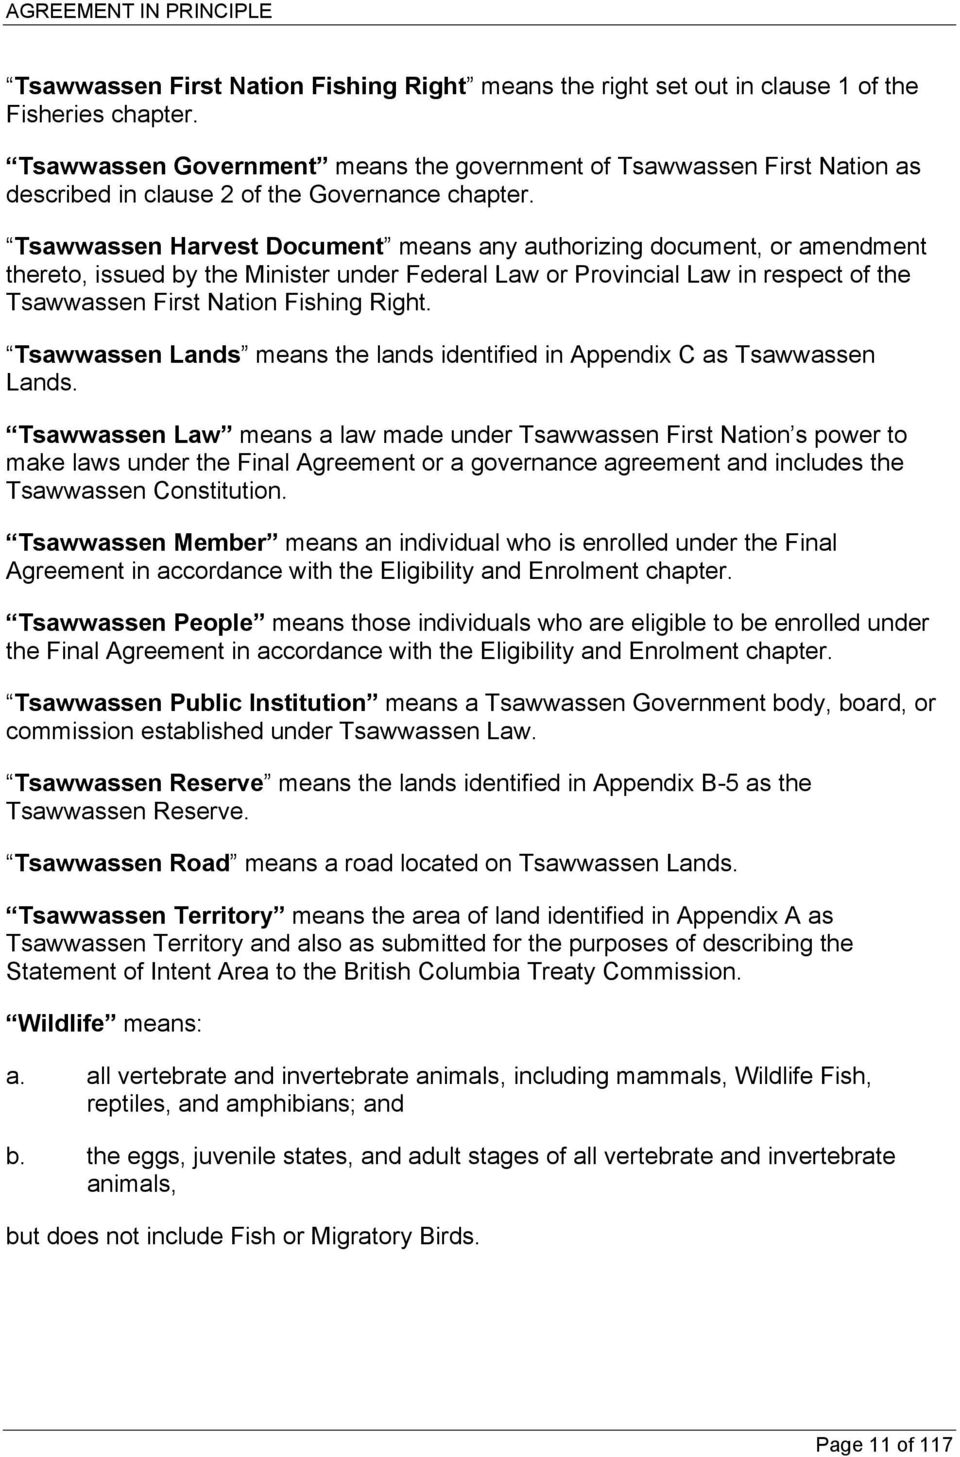 Tsawwassen Harvest Document means any authorizing document, or amendment thereto, issued by the Minister under Federal Law or Provincial Law in respect of the Tsawwassen First Nation Fishing Right.